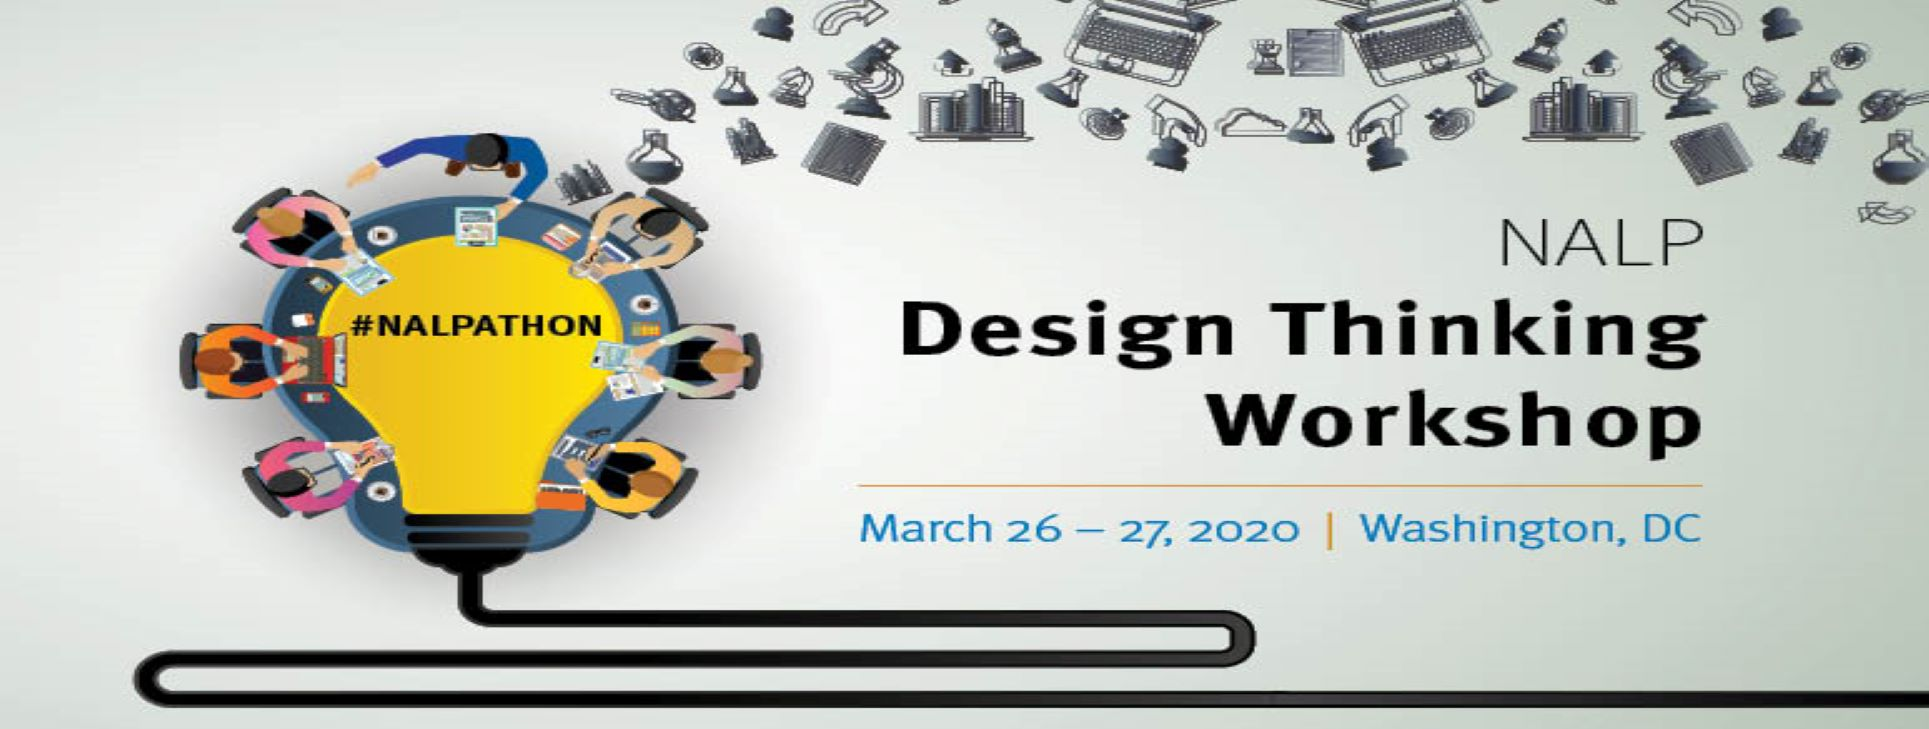 2020 NALP Design Thinking Workshop